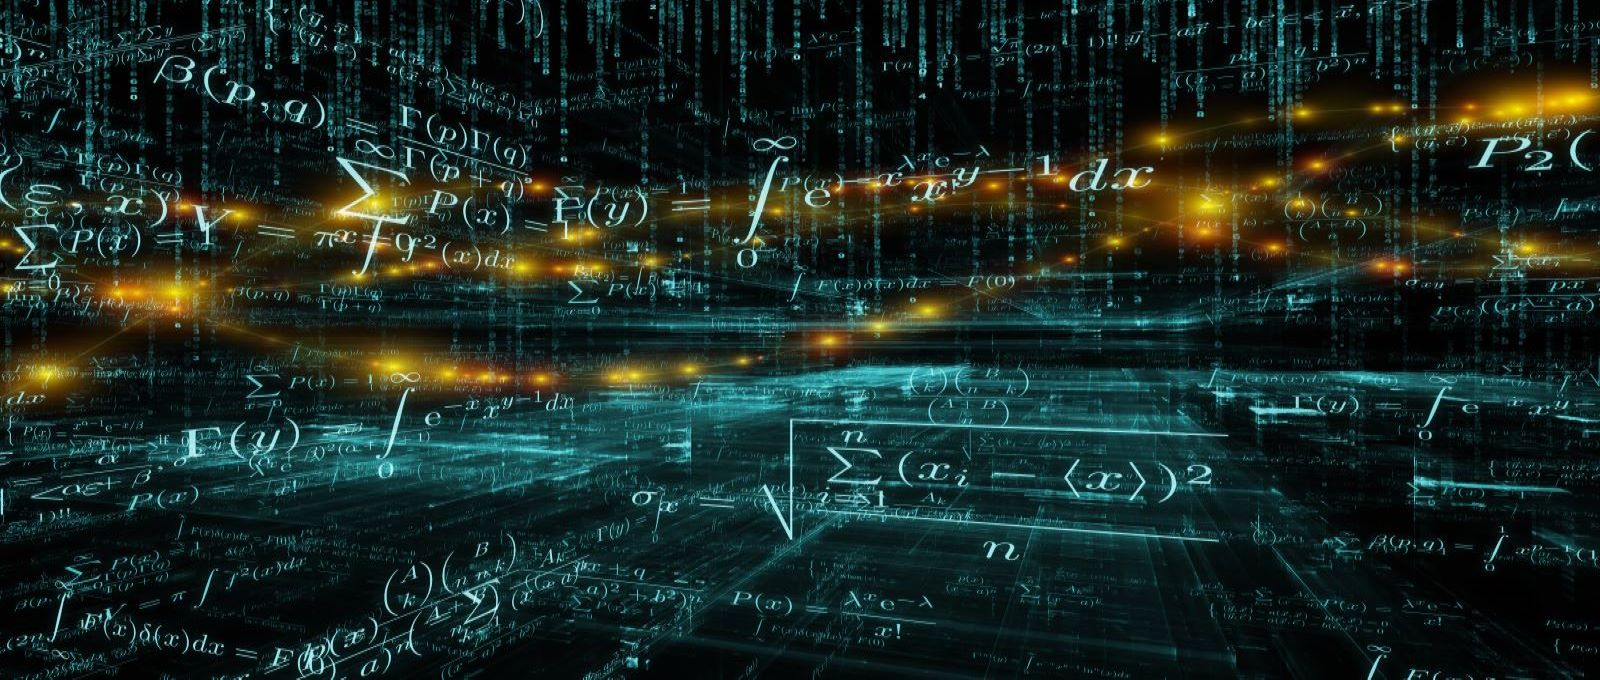 We carry out world-class research spanning topics in pure mathematics, applied mathematics, statistics & bioinformatics.